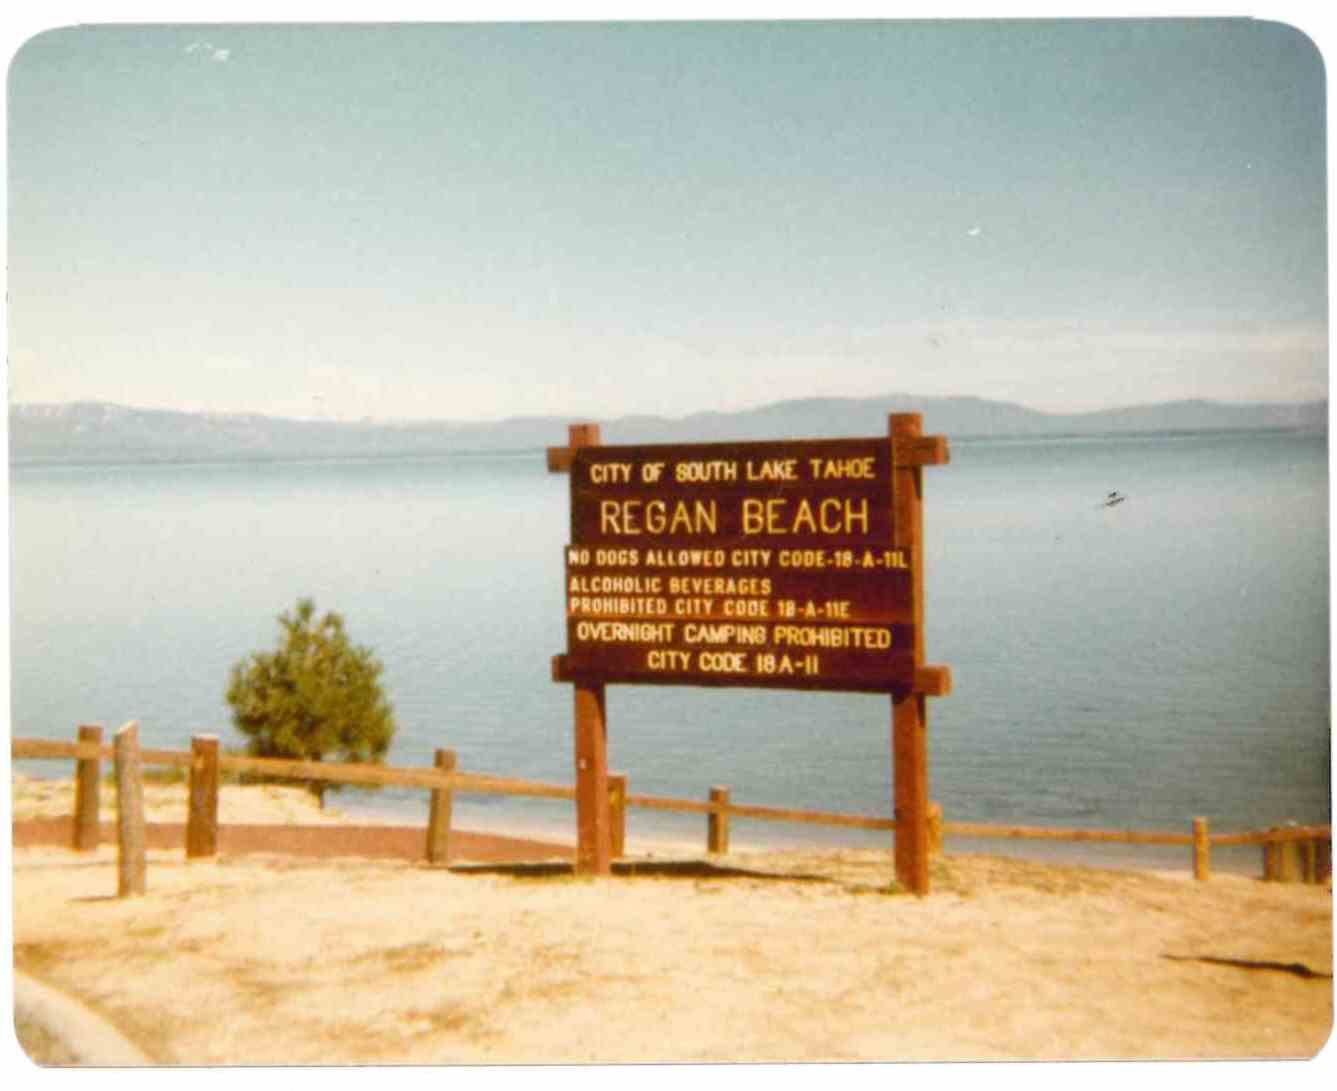 Regan Beach Sign 1981